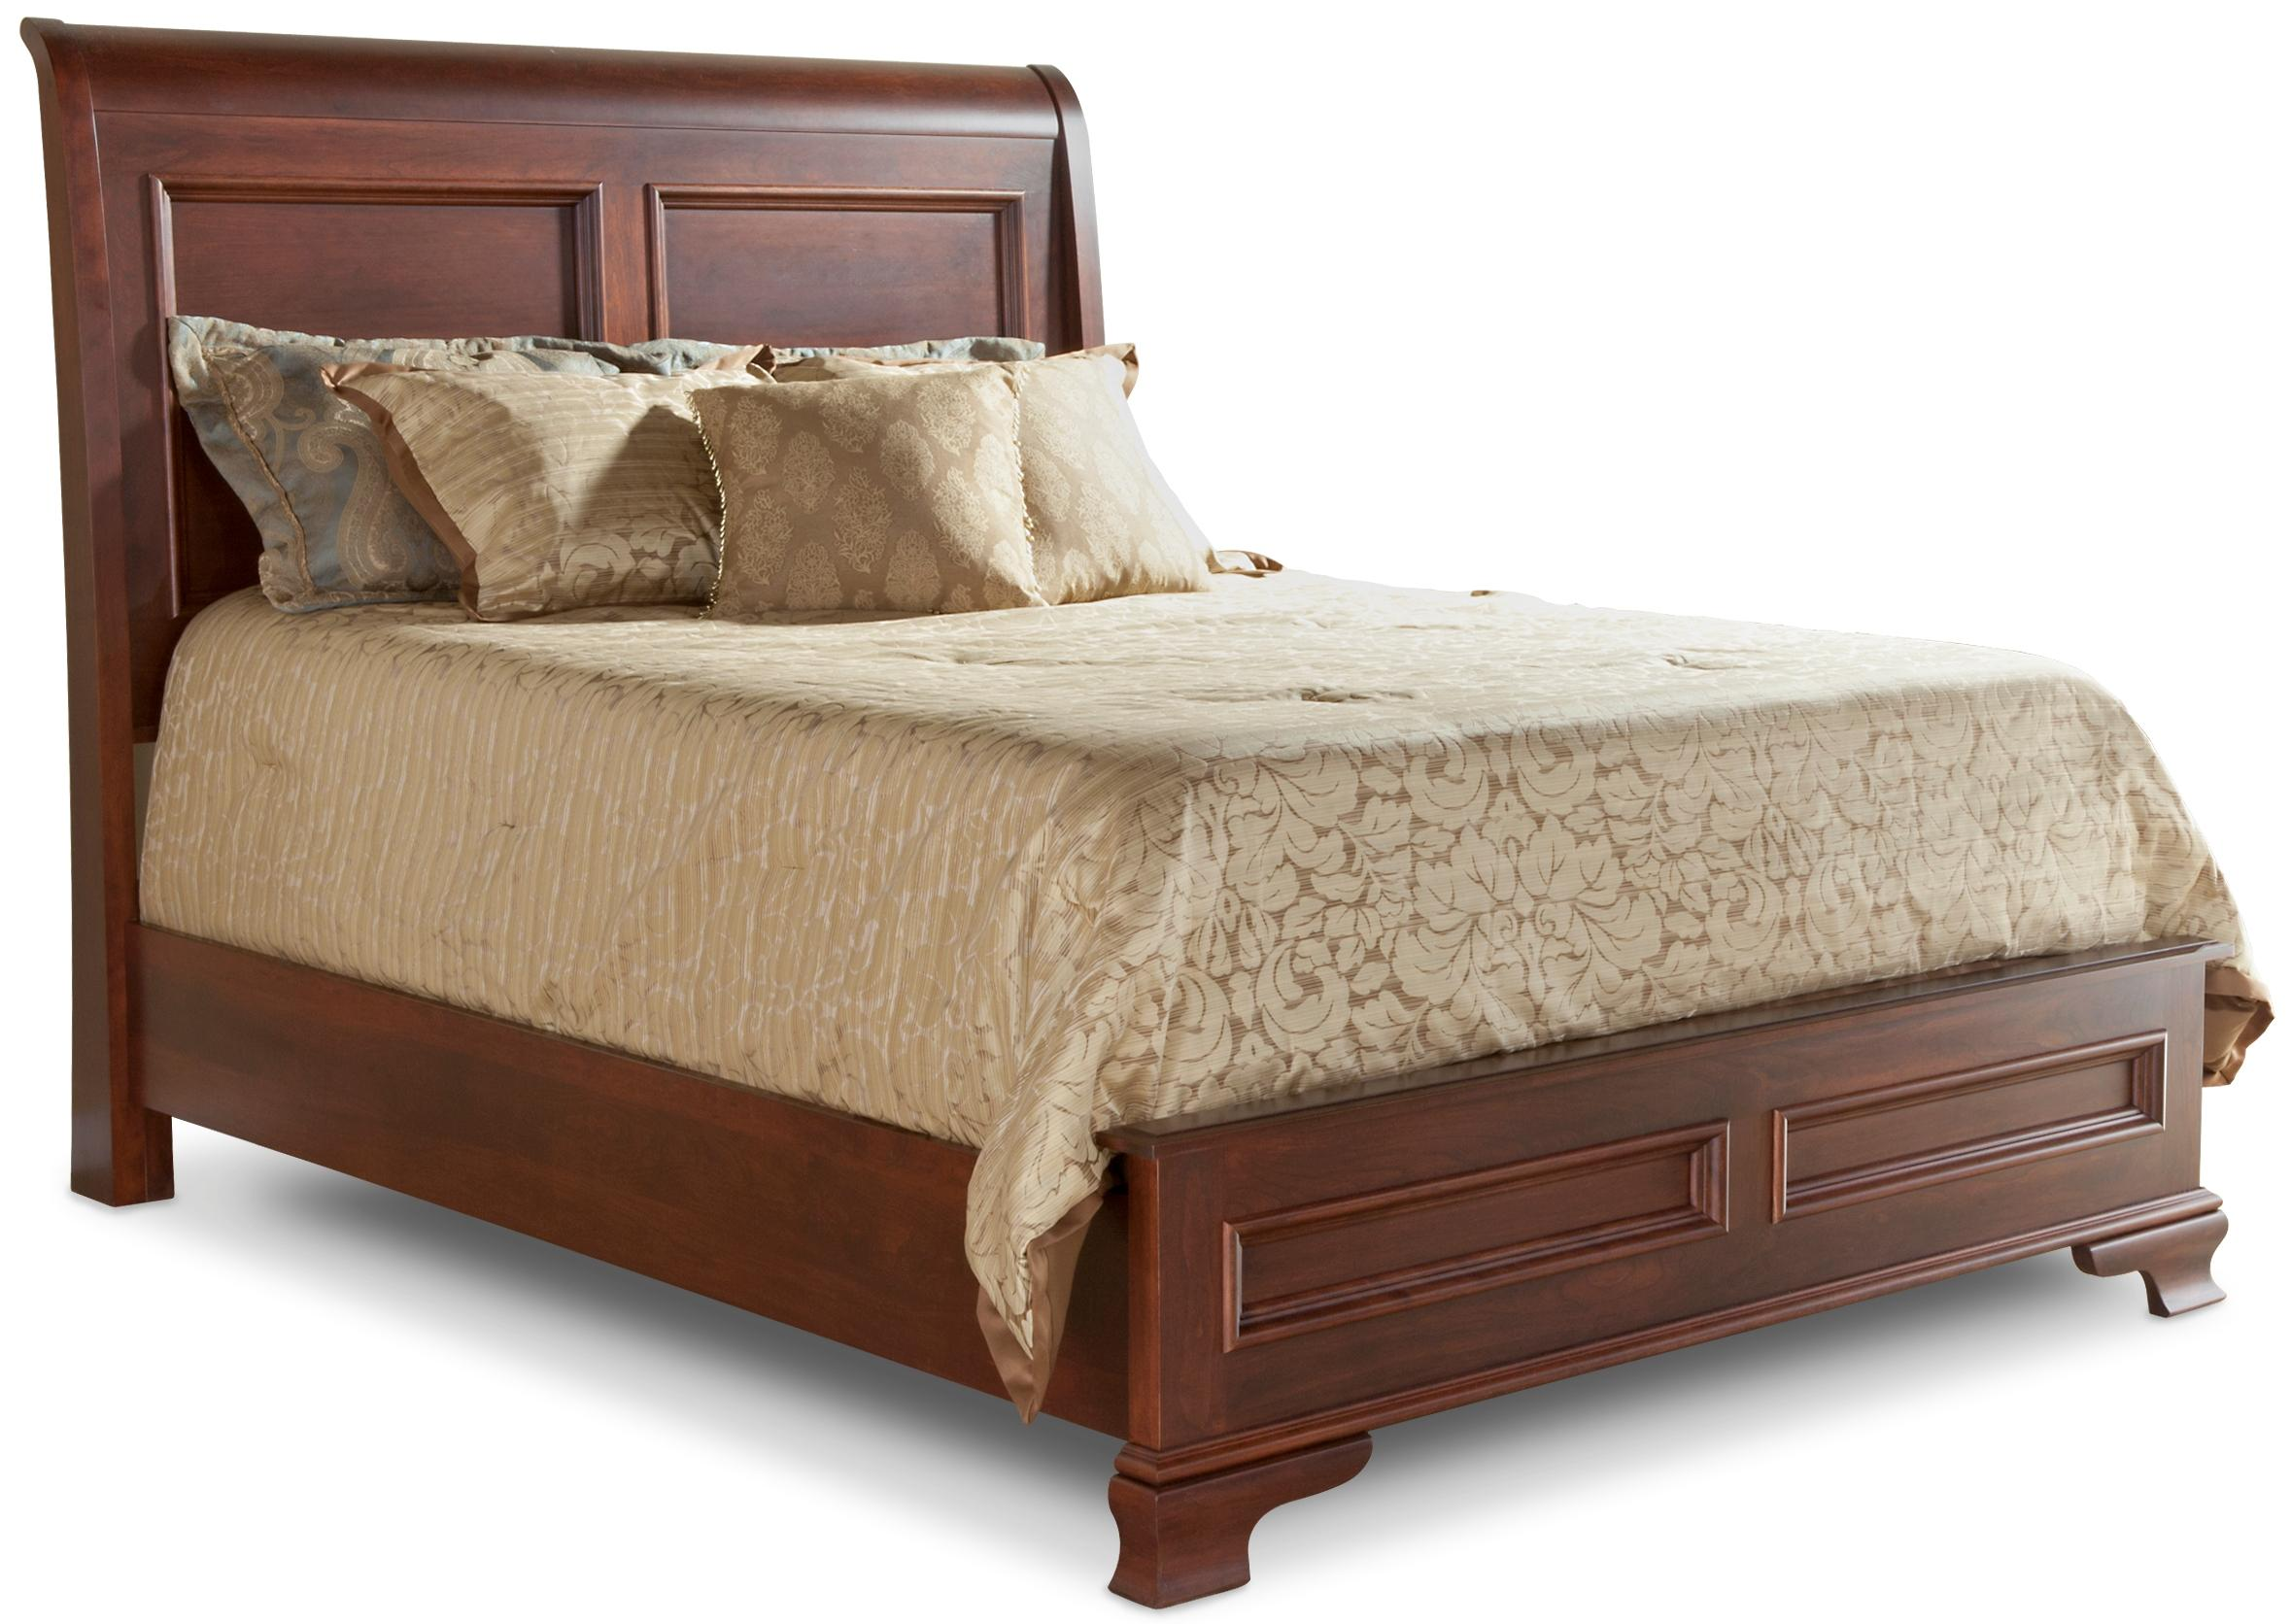 Classic Sleigh Bed with Low Footboard by Daniel's Amish at Saugerties Furniture Mart